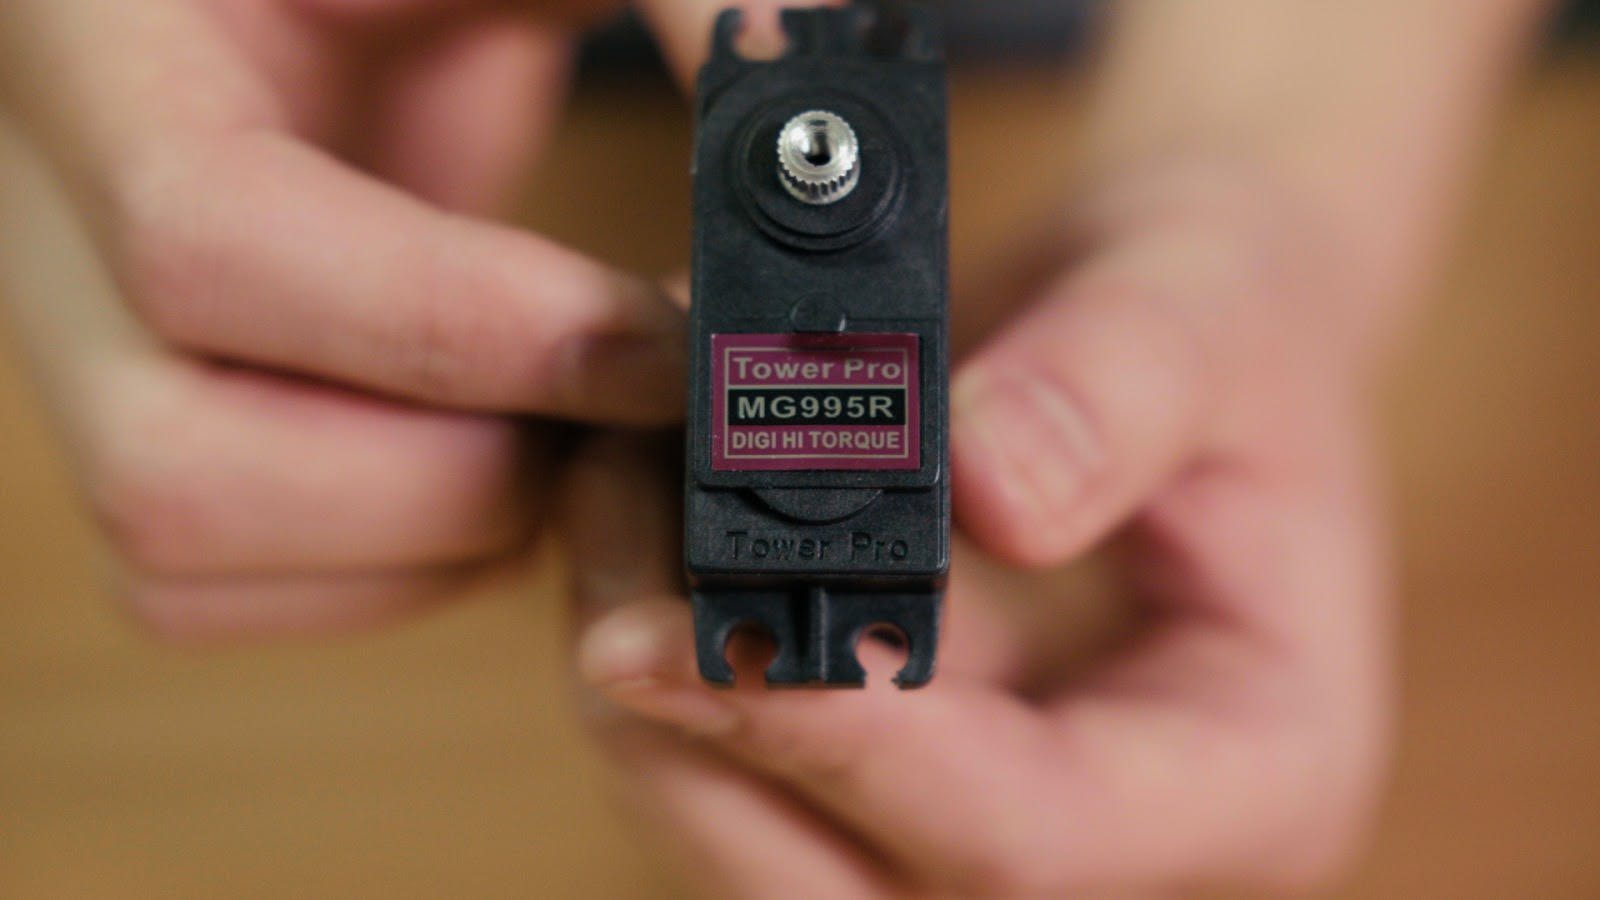 The Tower Pro MG995R high torque servo. This has since been replaced by Tower Pro MG996R.